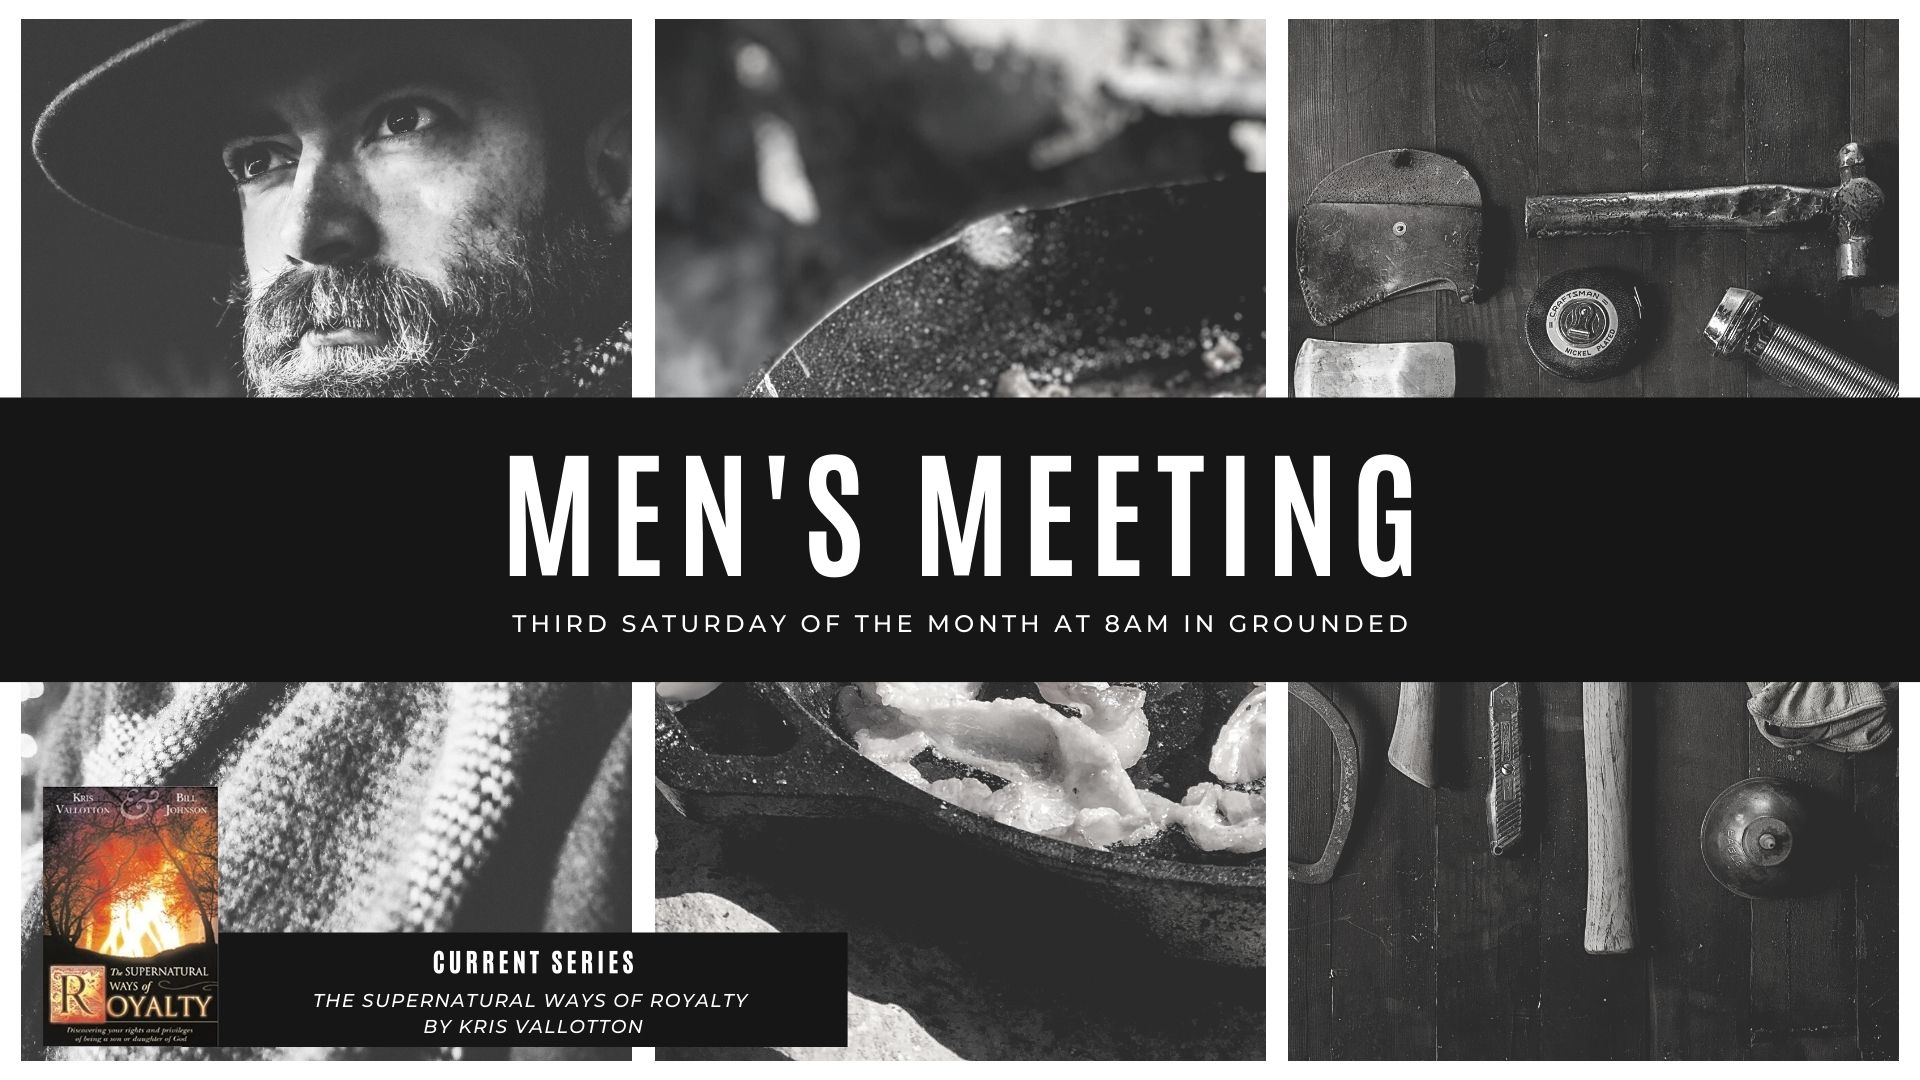 Men's Meeting - The Supernatural Ways of Royalty